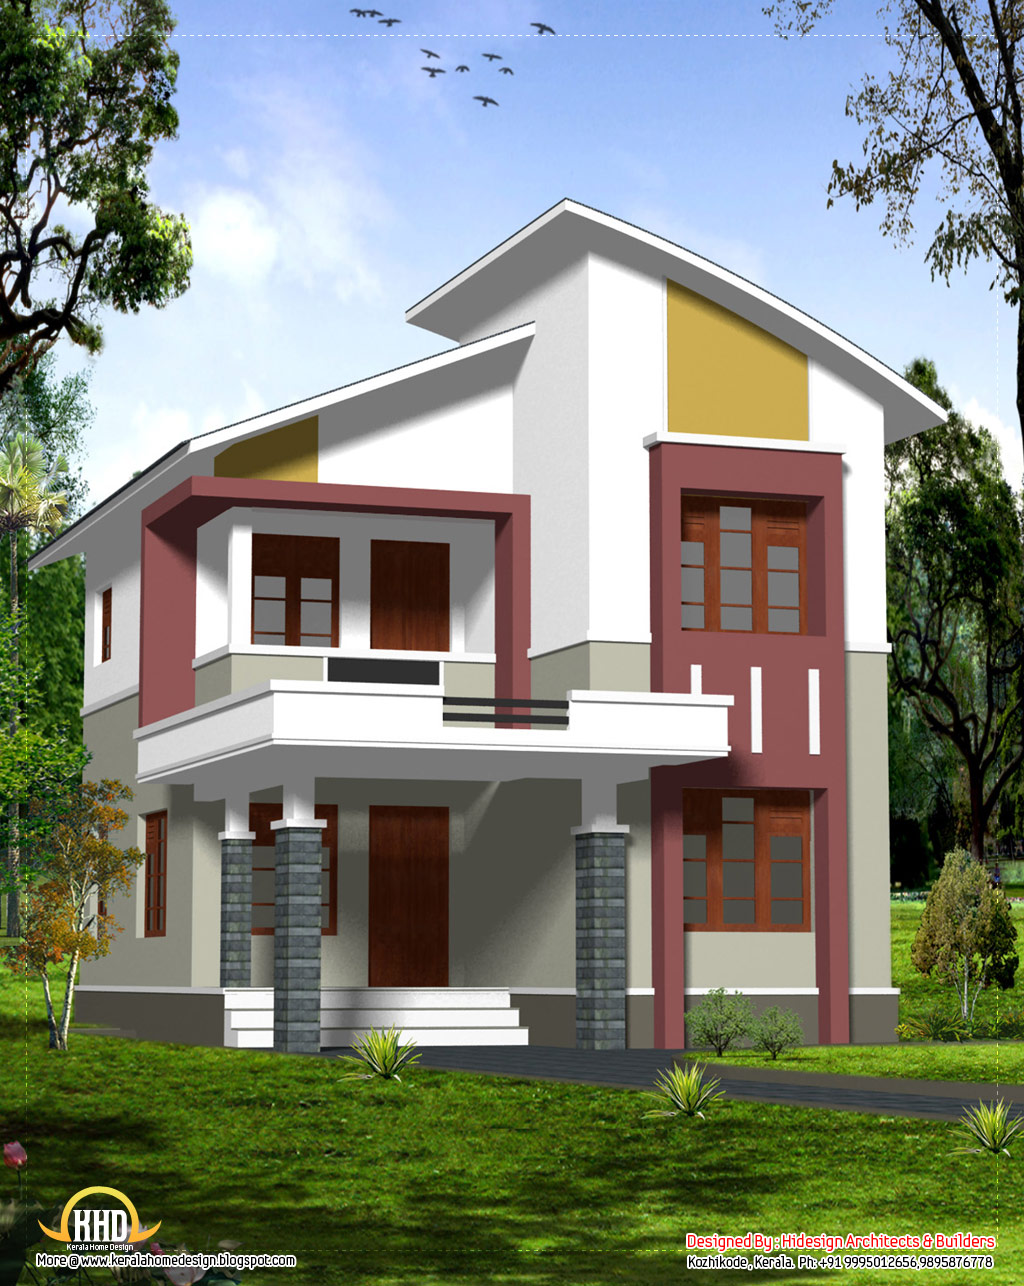 Outstanding Home House Design 1024 x 1286 · 337 kB · jpeg